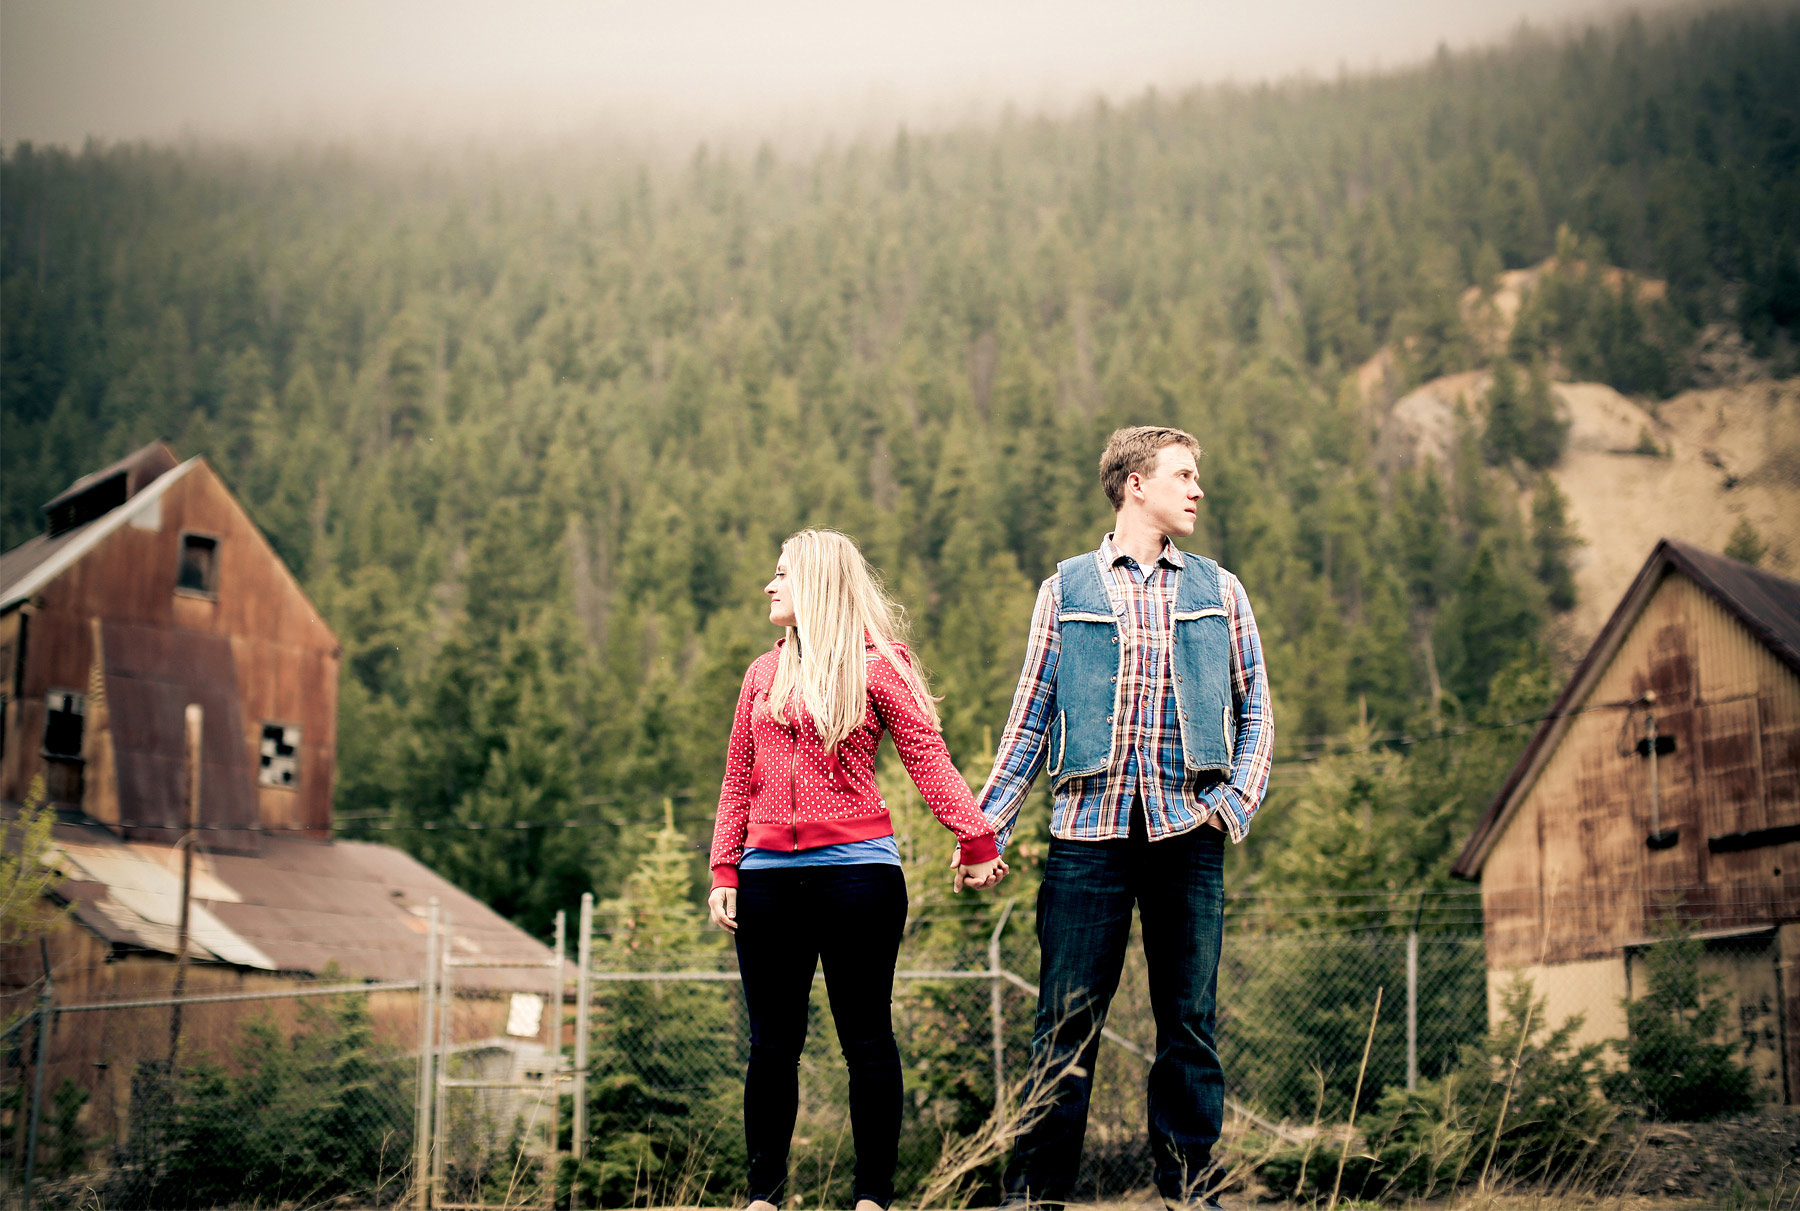 03-Denver-Colorado-Vail-Engagement-Photography-by-Vick-Photography-Winter-Engagement-Rustic-Mountains-Lucy-&-Matt.jpg